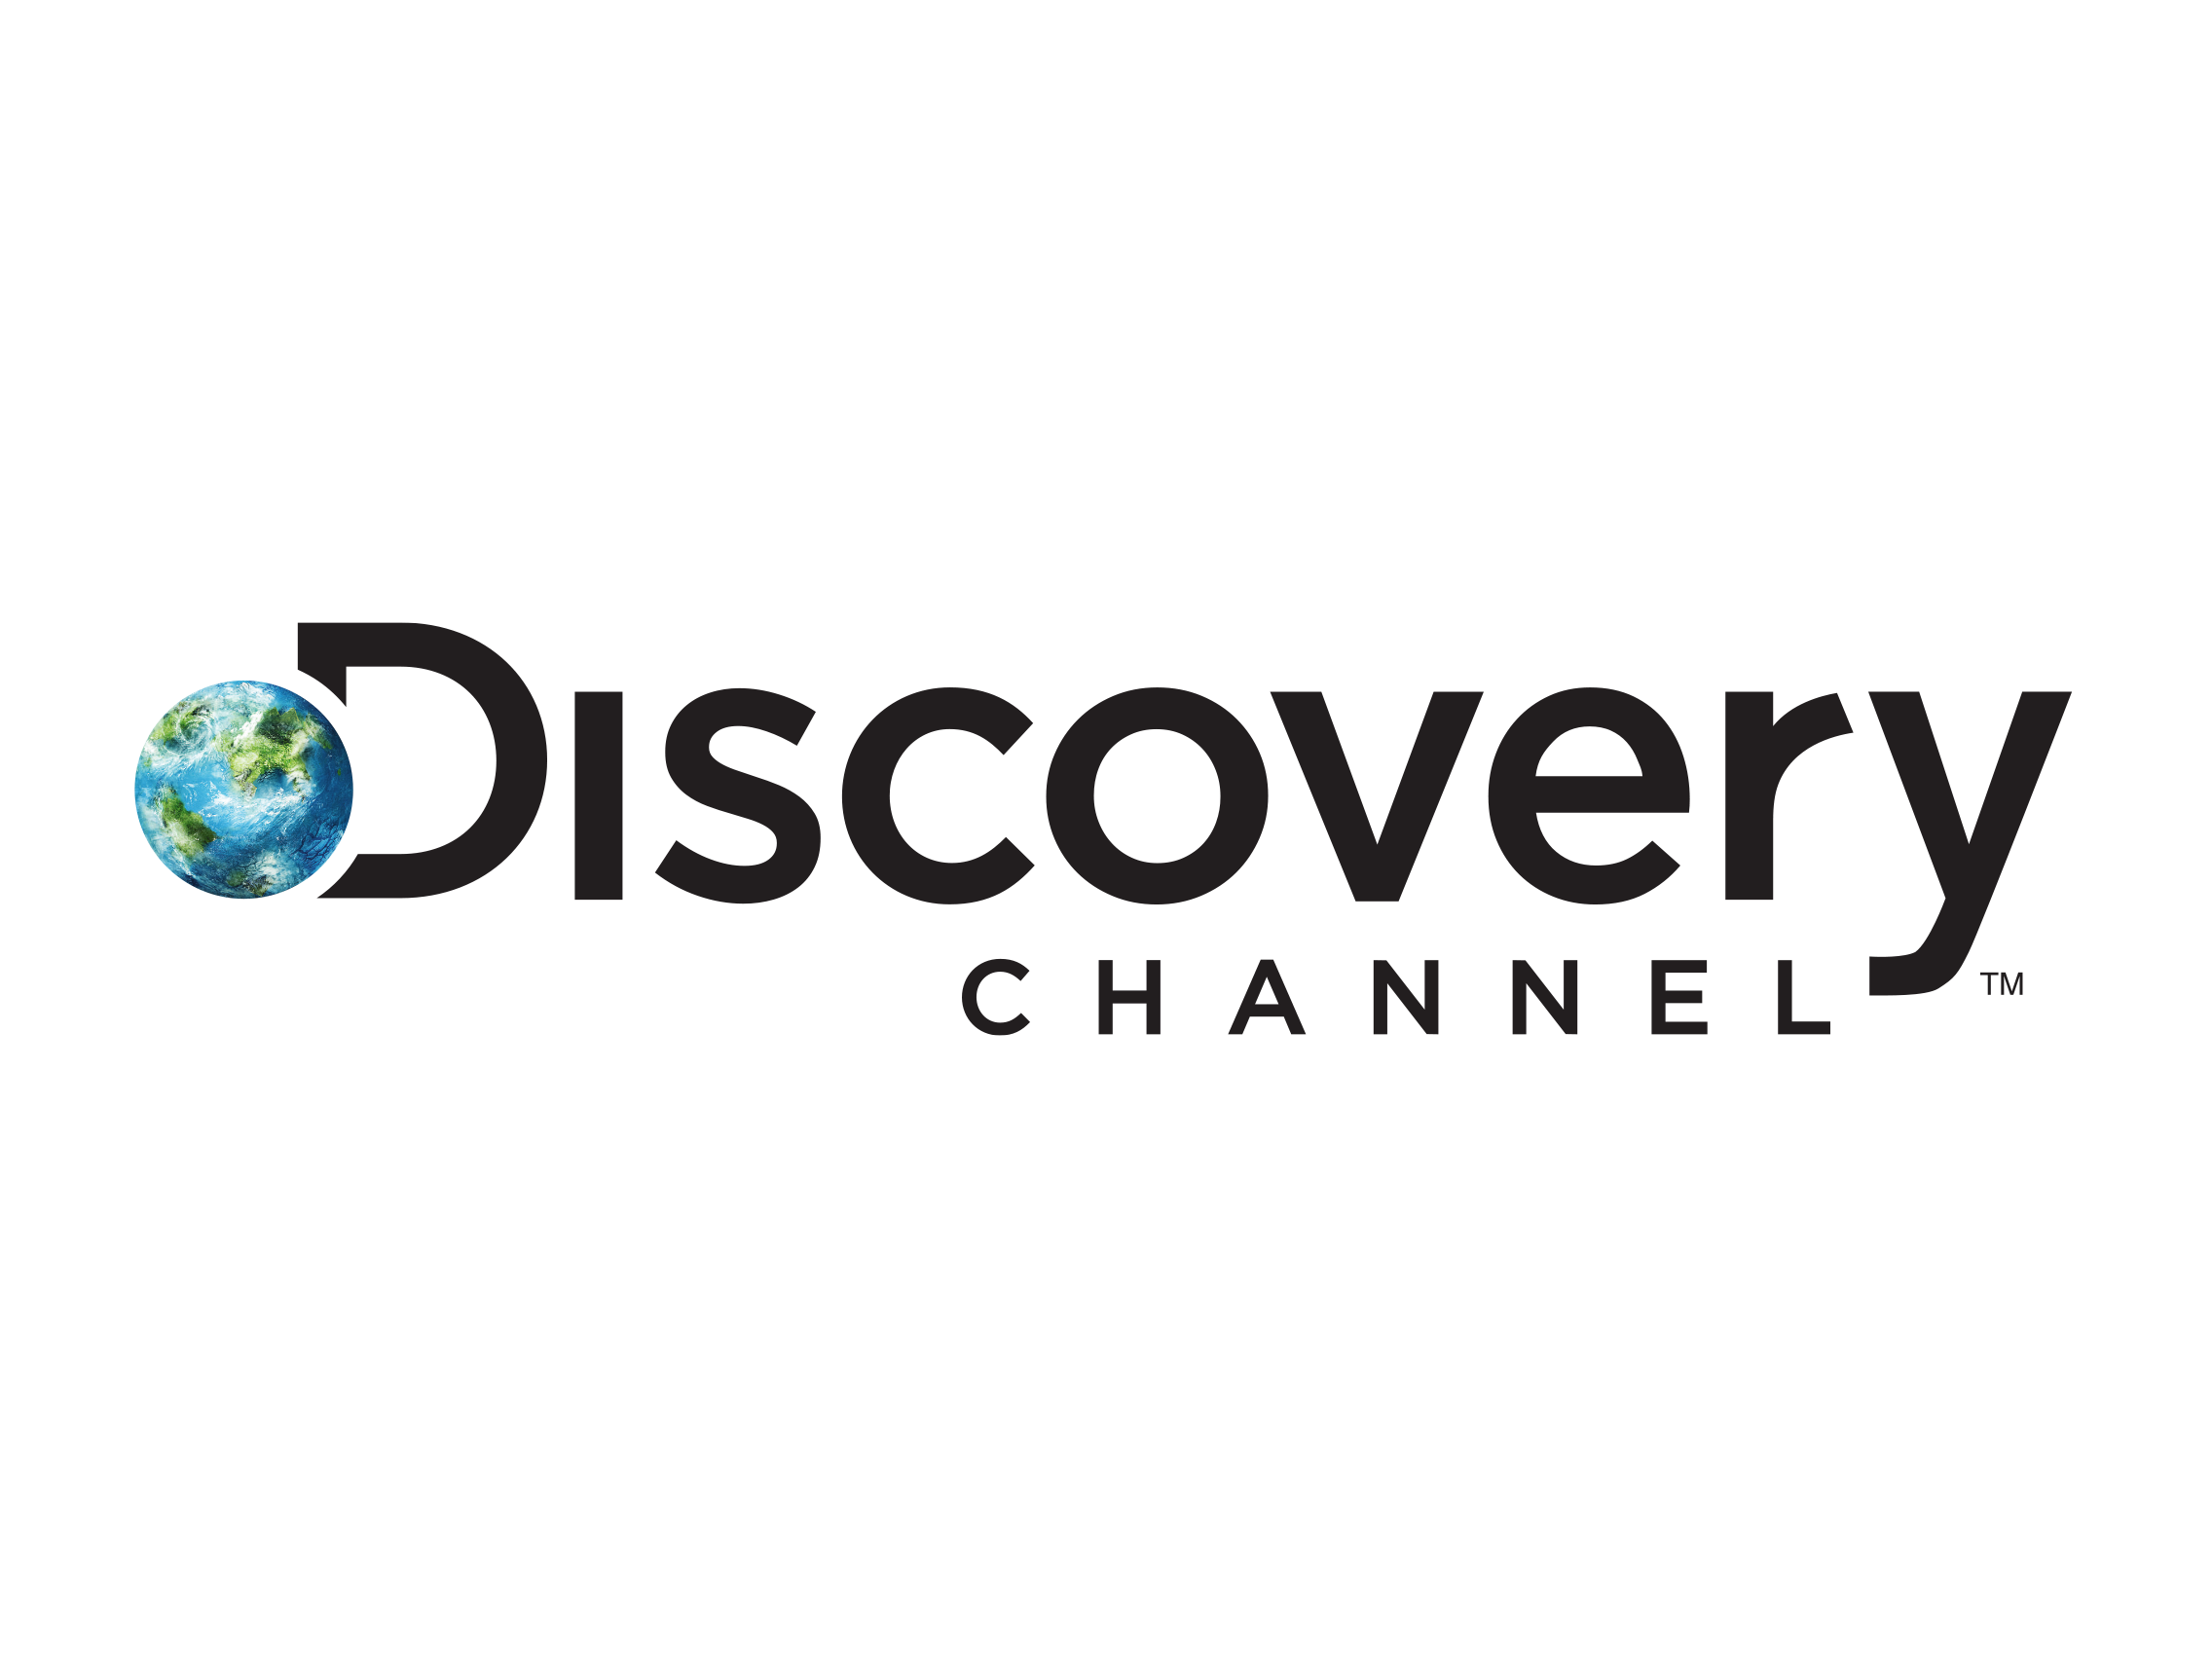 Discovery Channel TV shows